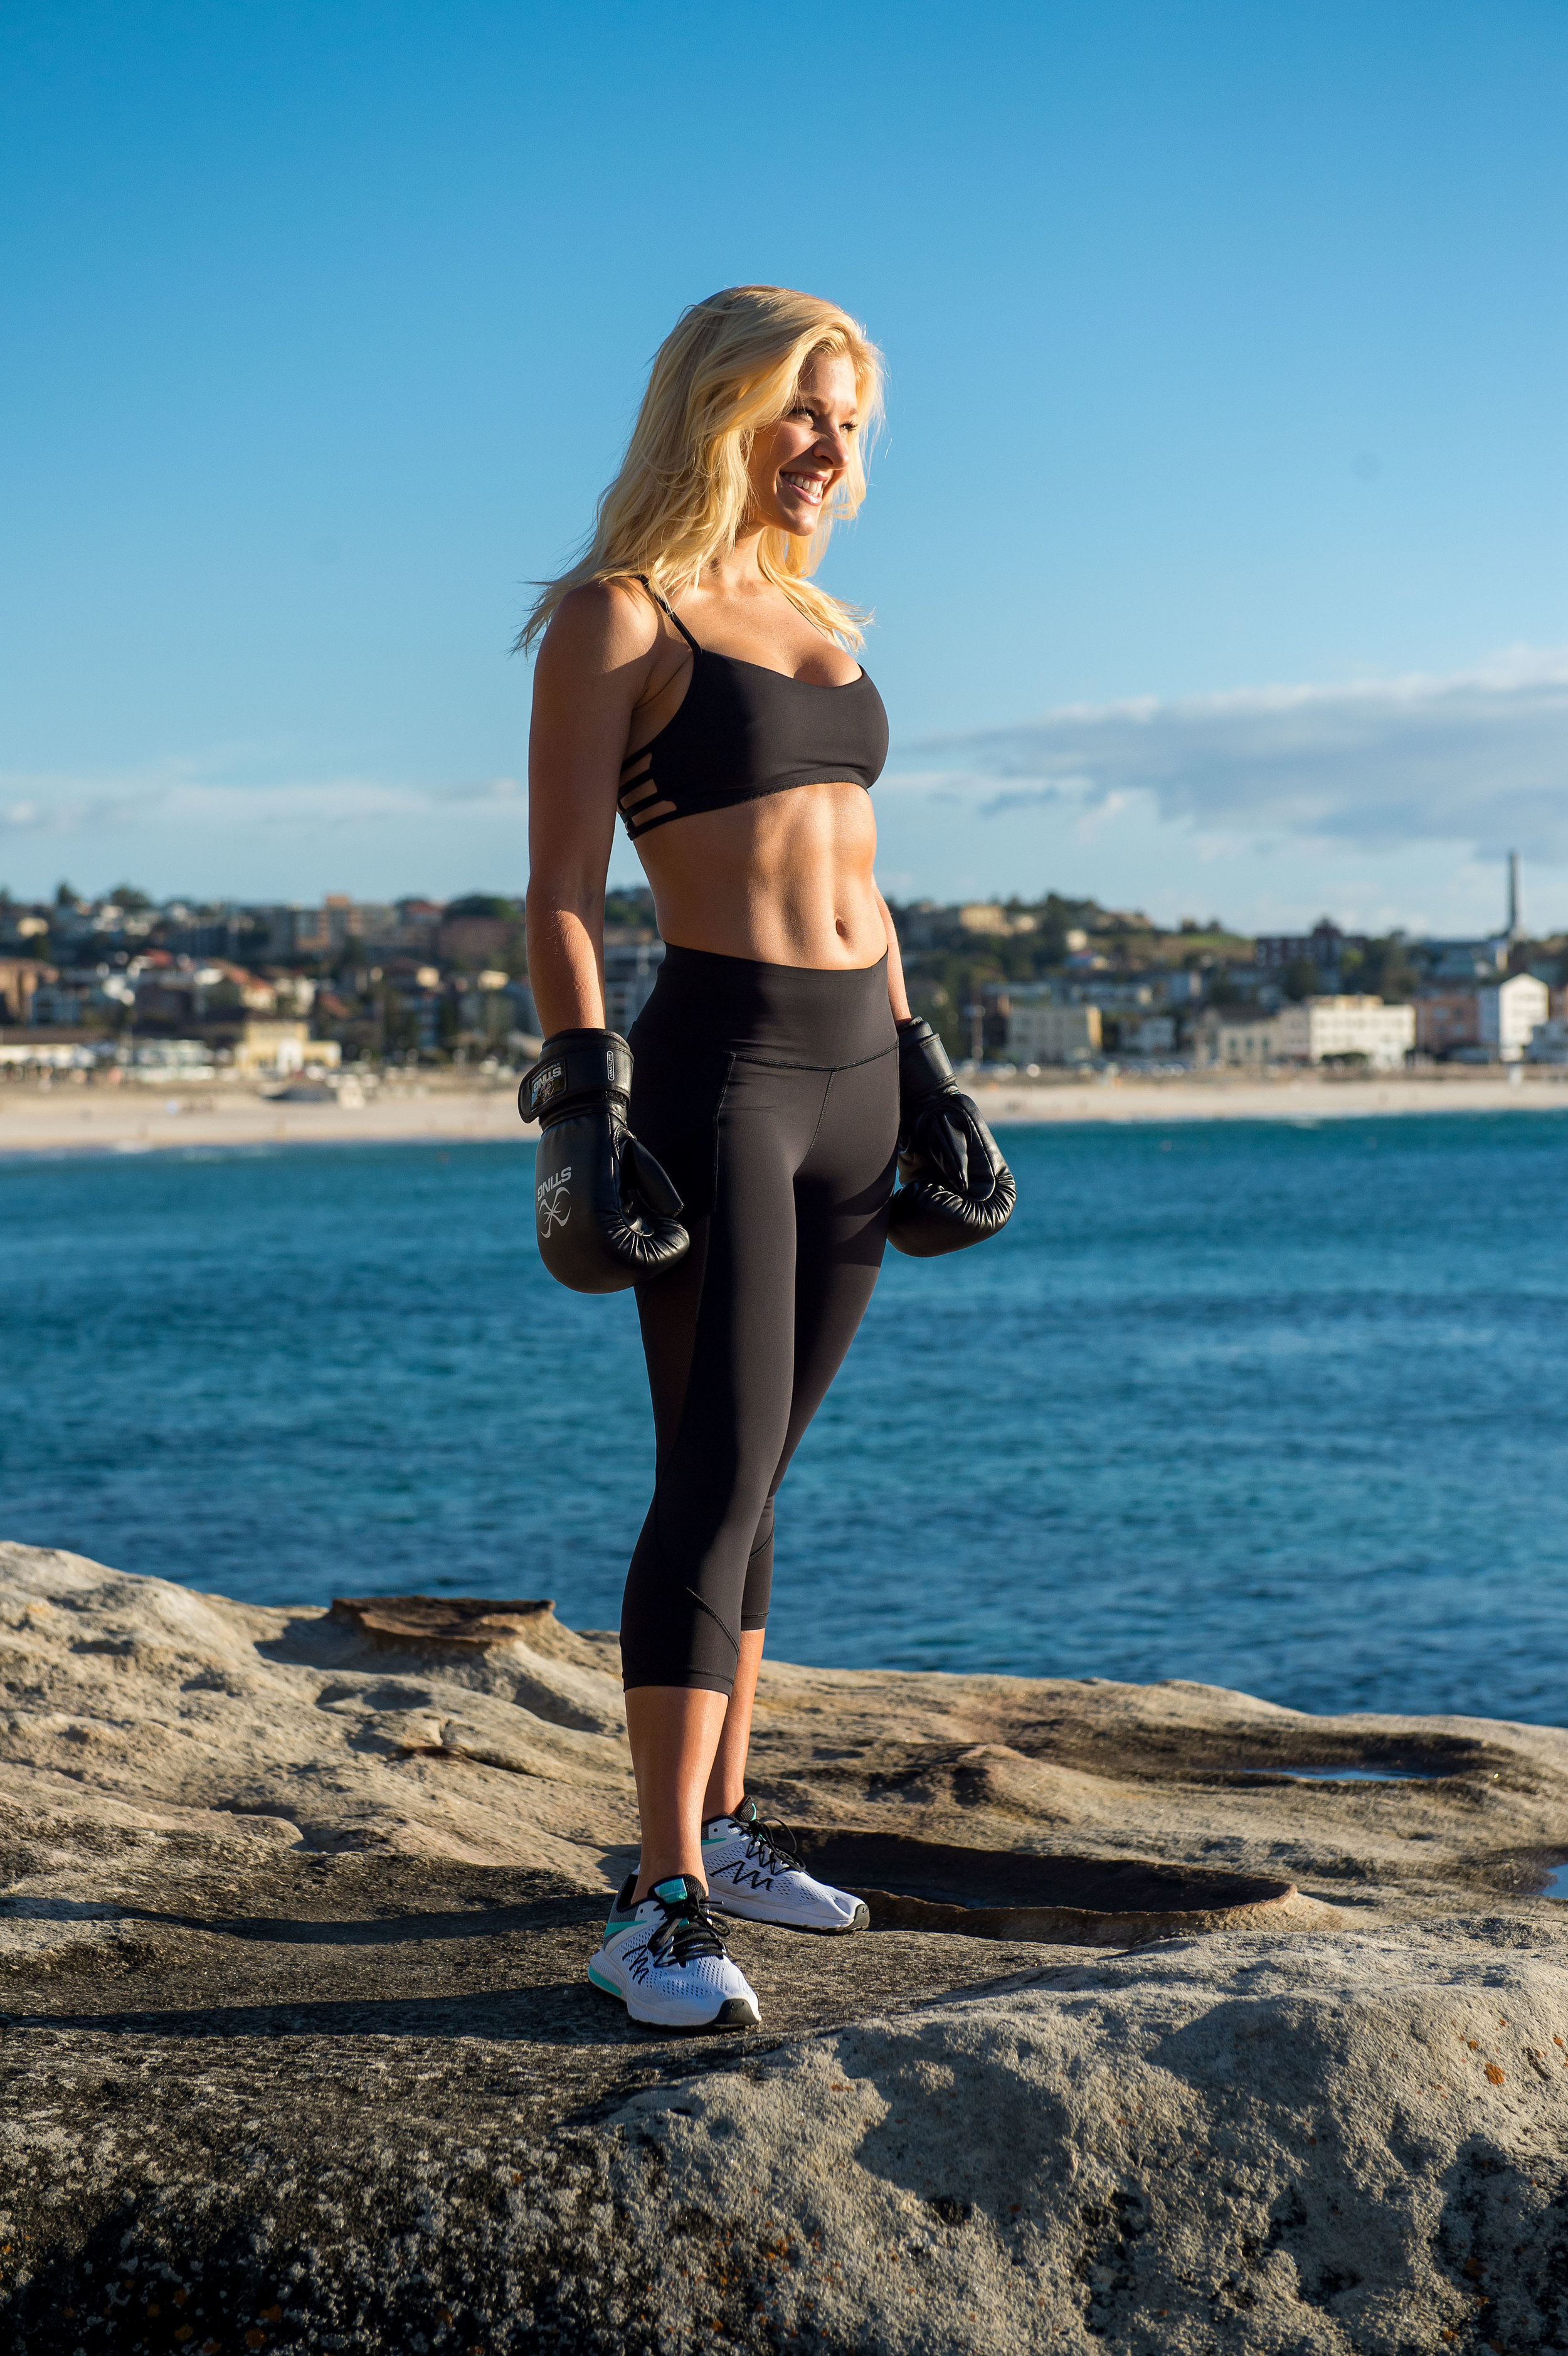 My tip for making and  keeping  fitness goals!?! Find an activity you ENJOY! We are more likely to stick to an exercise routine when we find it fun. If you hate running... Don't do it. Go for a swim, walk your dog, or find a friend and play tennis. ;-)